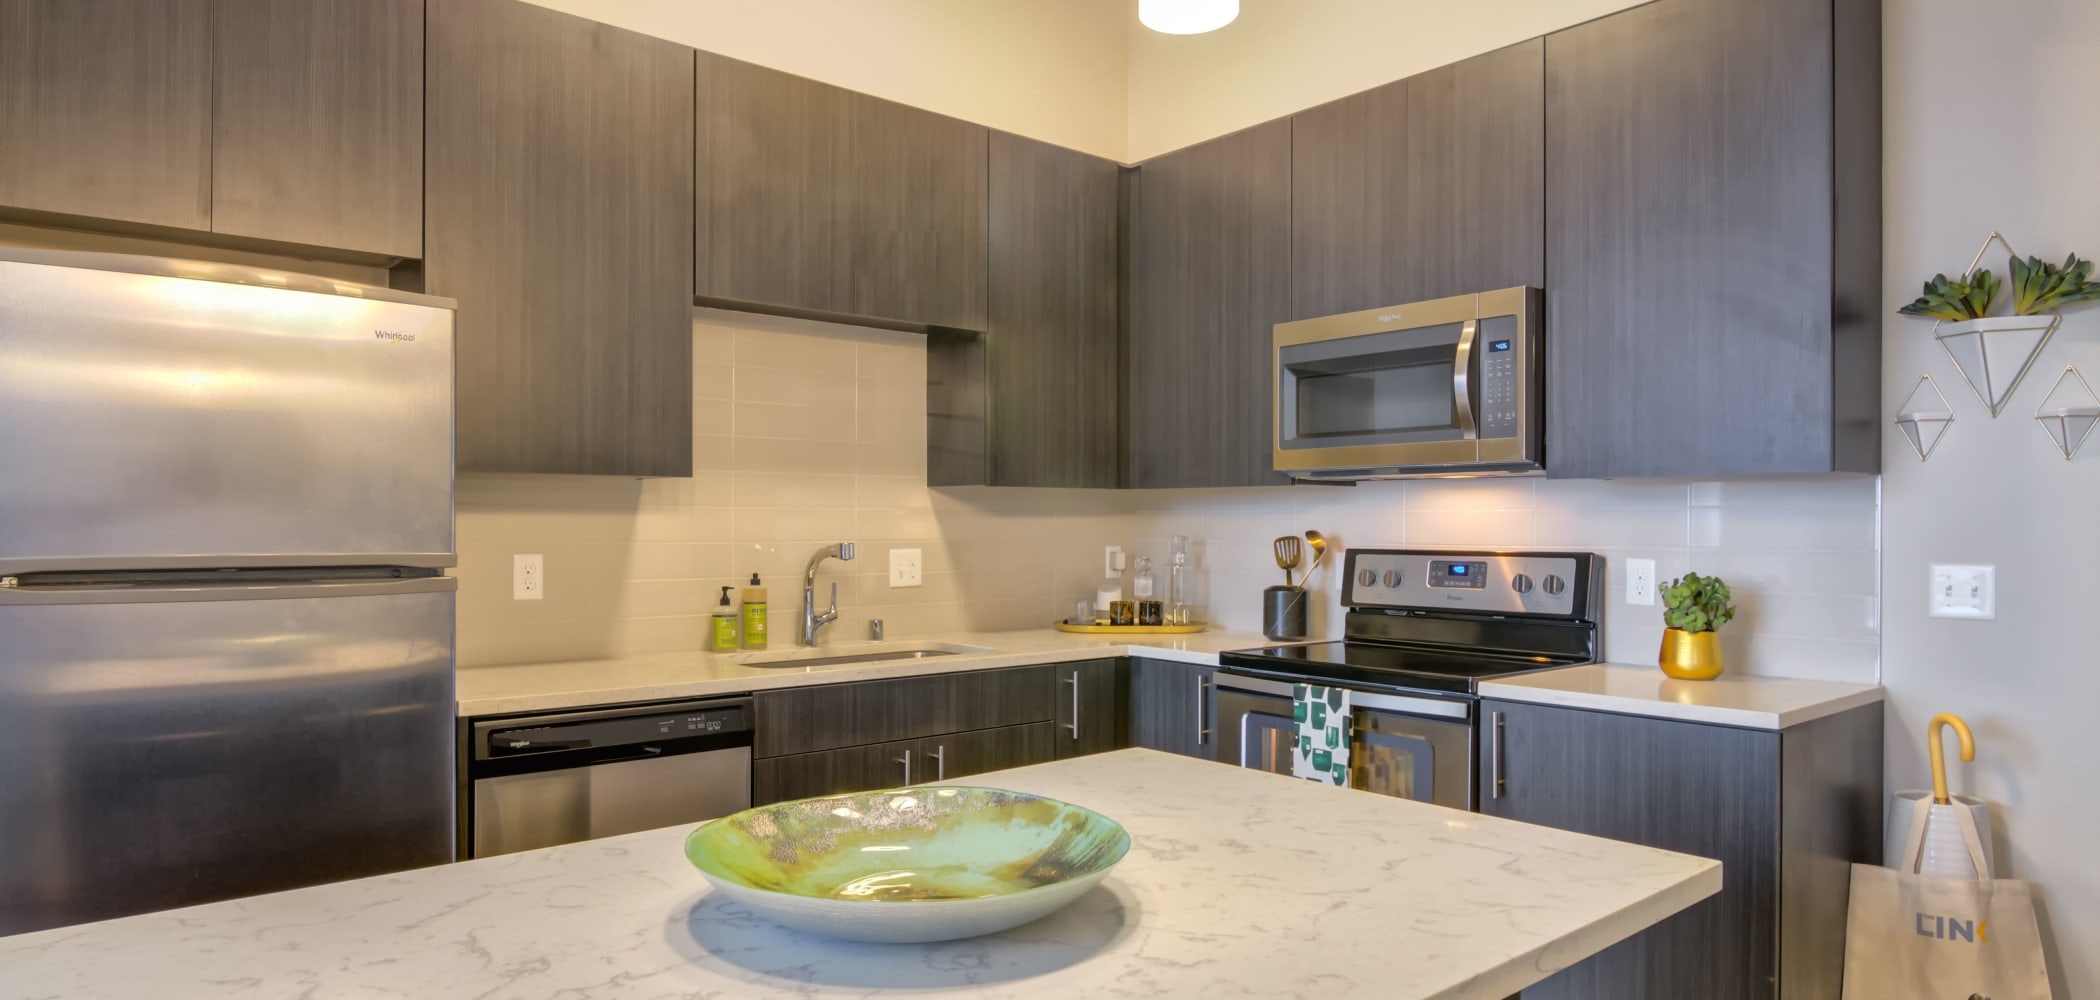 Kitchen with plenty of cabinet space at The Link Minneapolis in Minneapolis, Minnesota